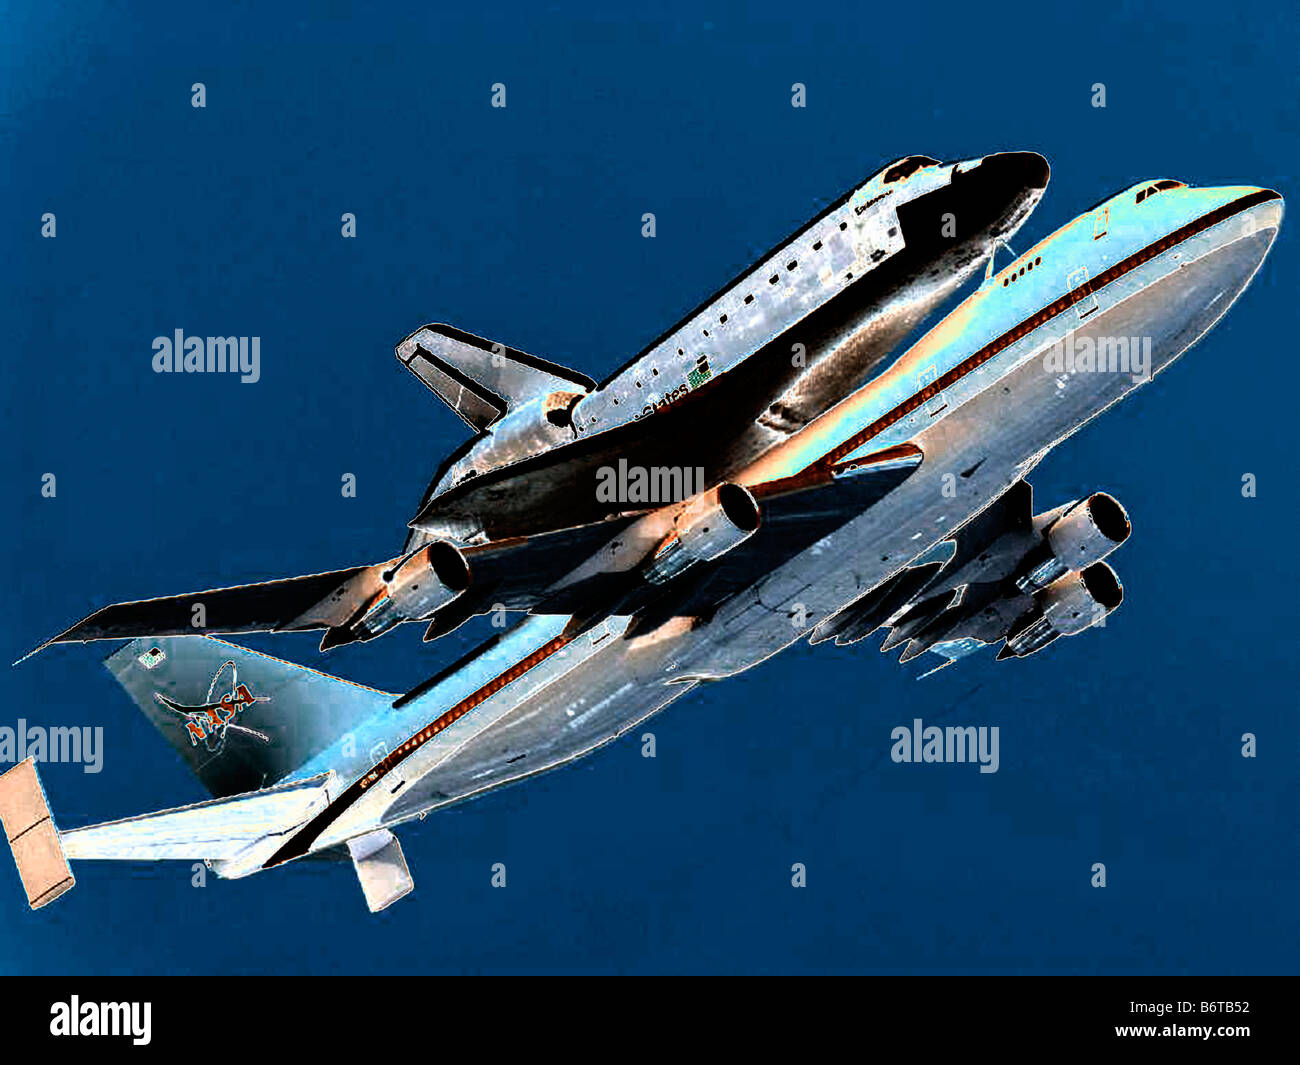 Nasa Space Shuttle Traveling Attached To A Boeing 747